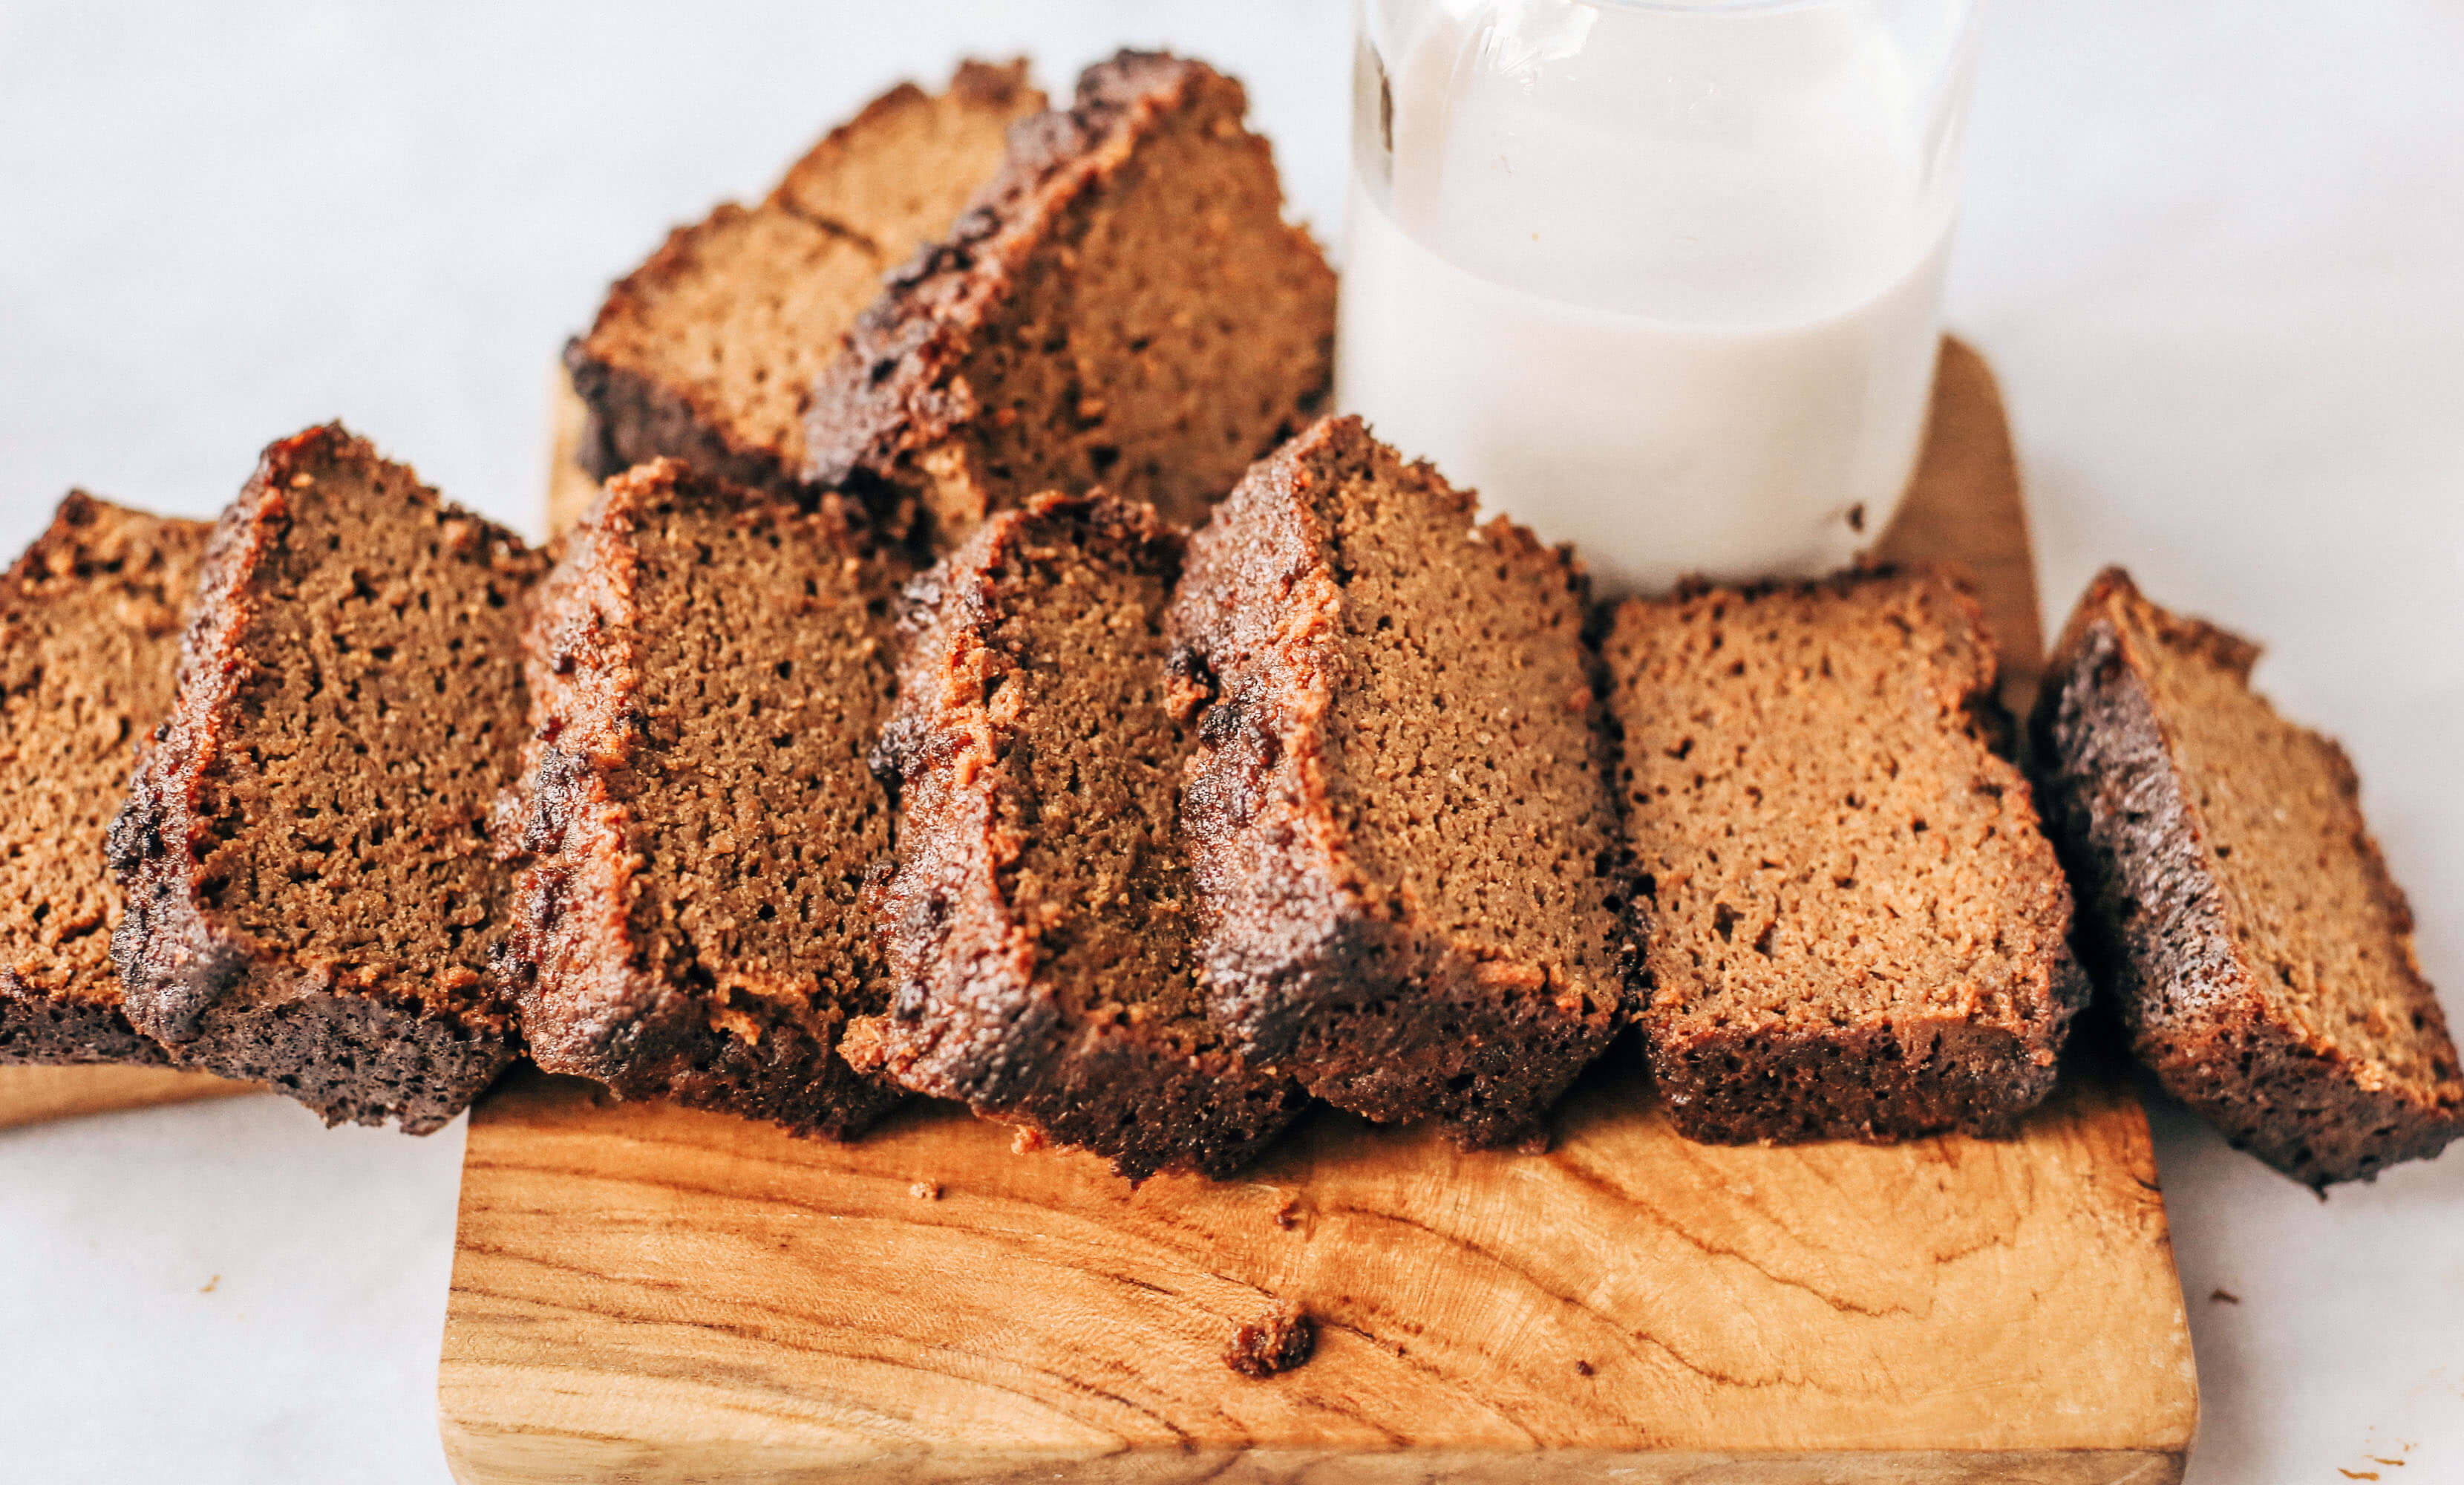 Easy recipe for healthy paleo gingerbread- made with sweet potatoes instead of flour! This loaf is such a yummy fall treat that is easy to make in a food processor. Gluten free, grain free, and dairy free gingerbread made with real ingredients. Kid approved!